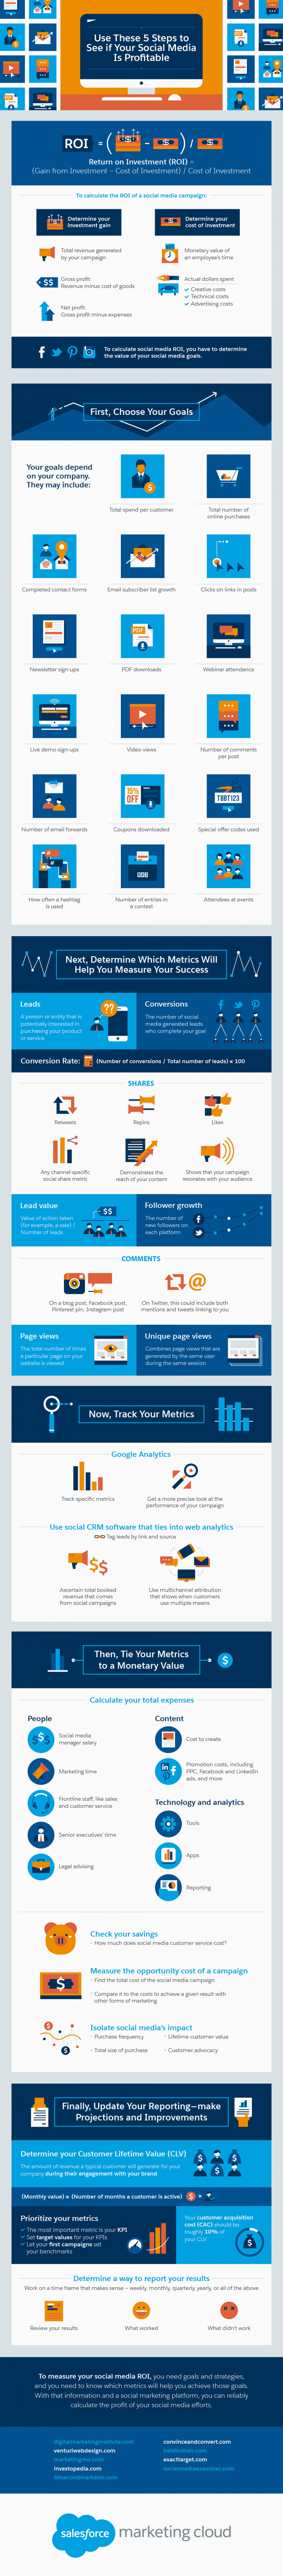 Use These 5 Steps to See if Your Social Media is Profitable Infographic